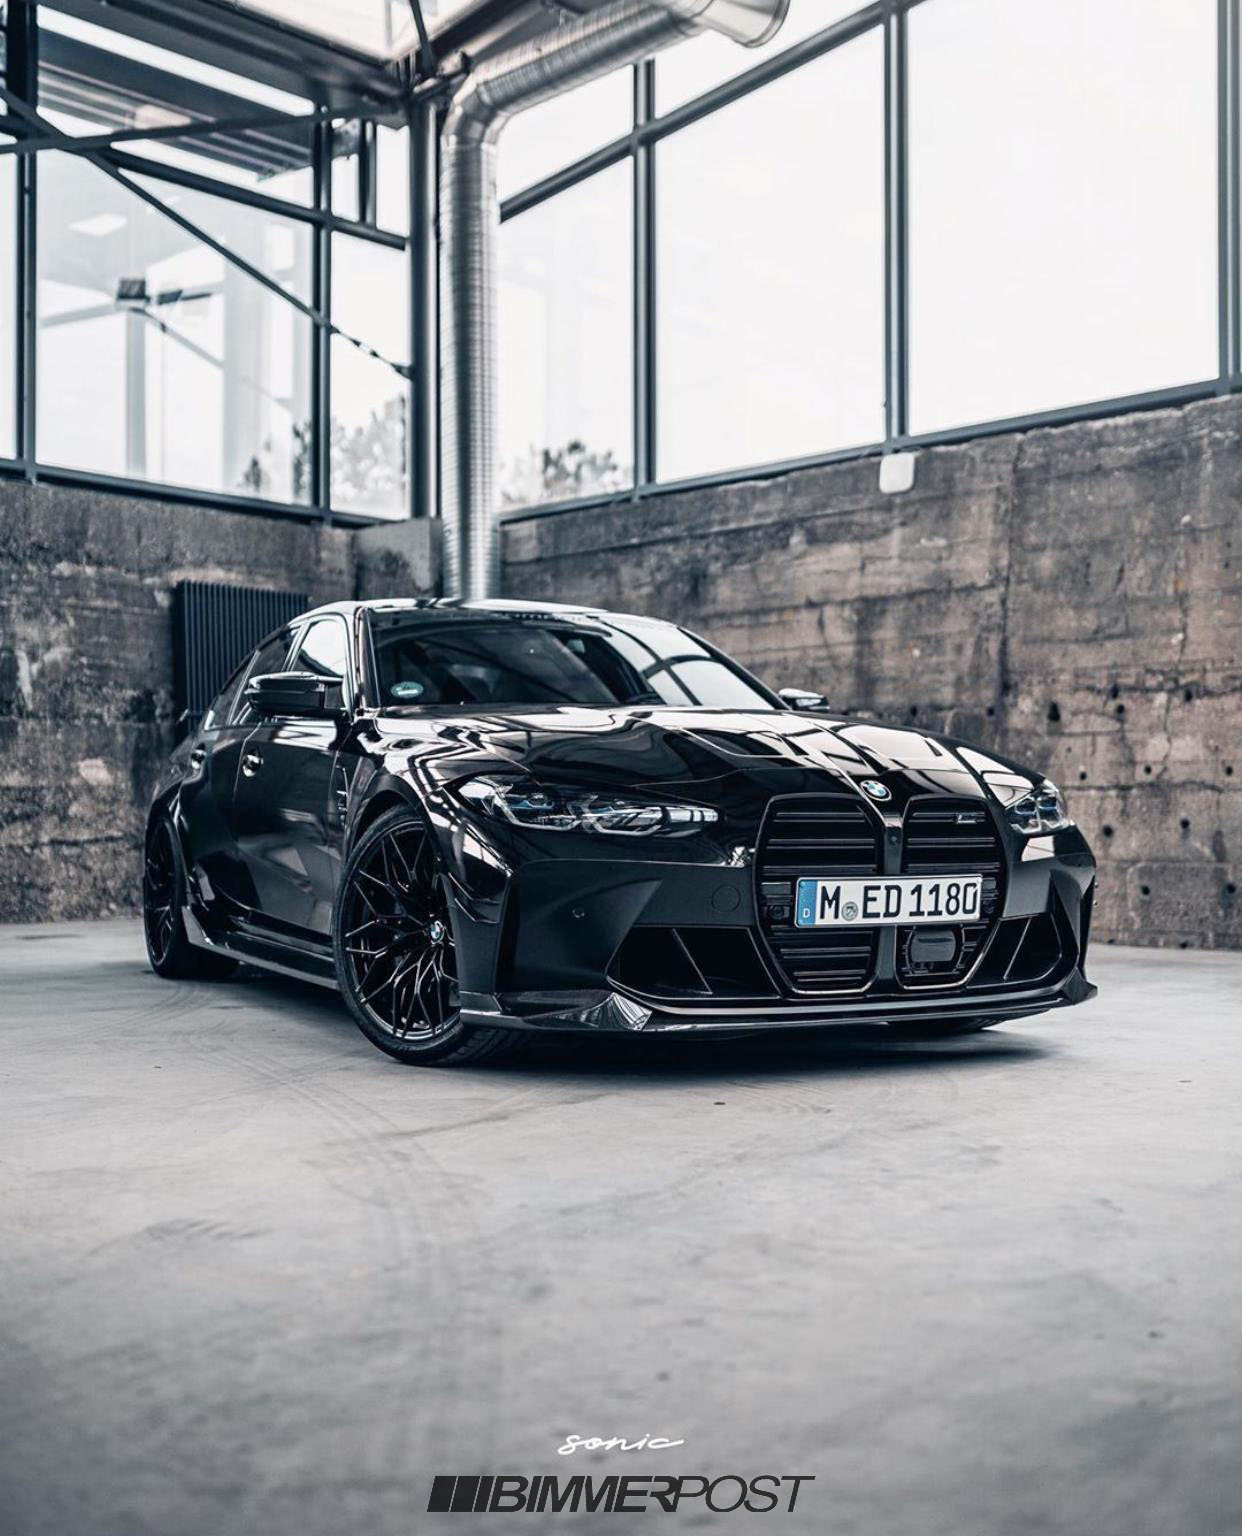 Black G80 M3 Competition With M Performance Parts Is Best Looking Yet Bmw M3 G80 G82